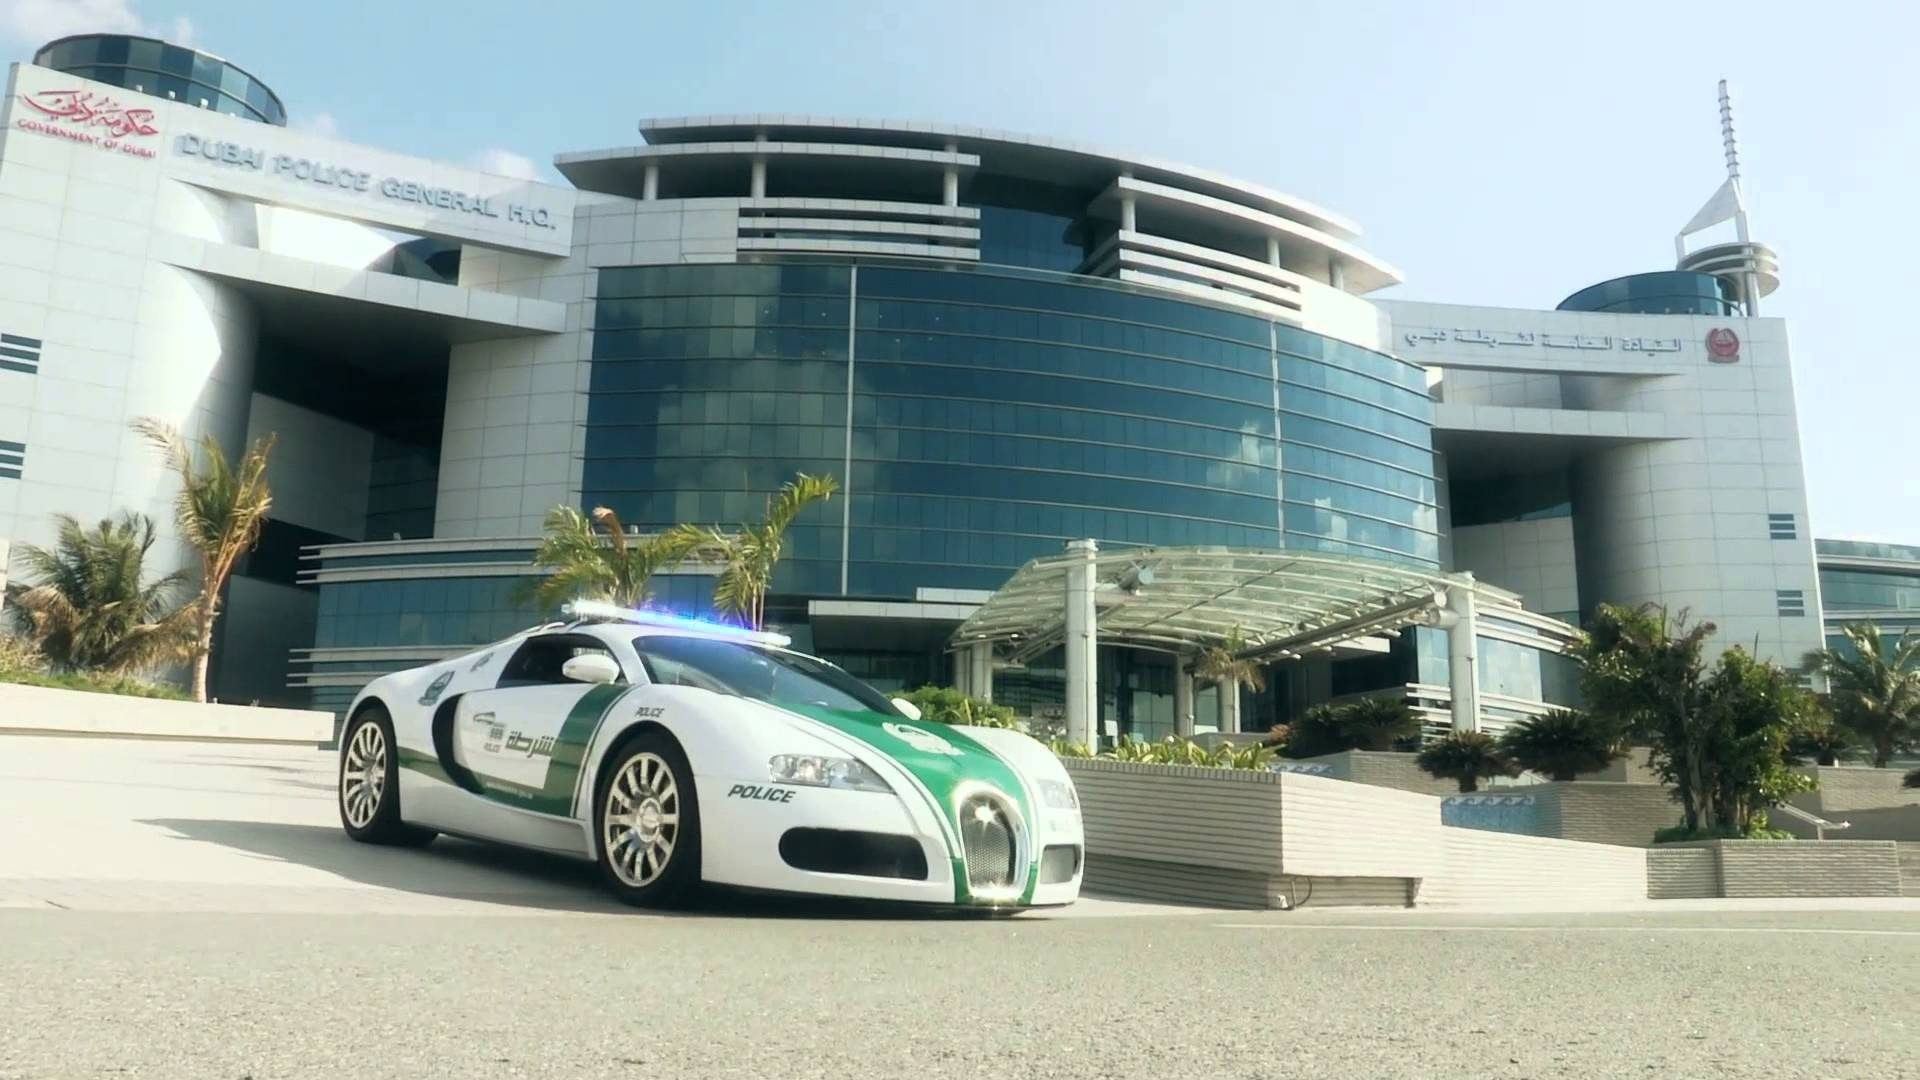 Res: 1920x1080, Dubai Cars Wallpaper Background Otomotif Wallpaper 1920×1080